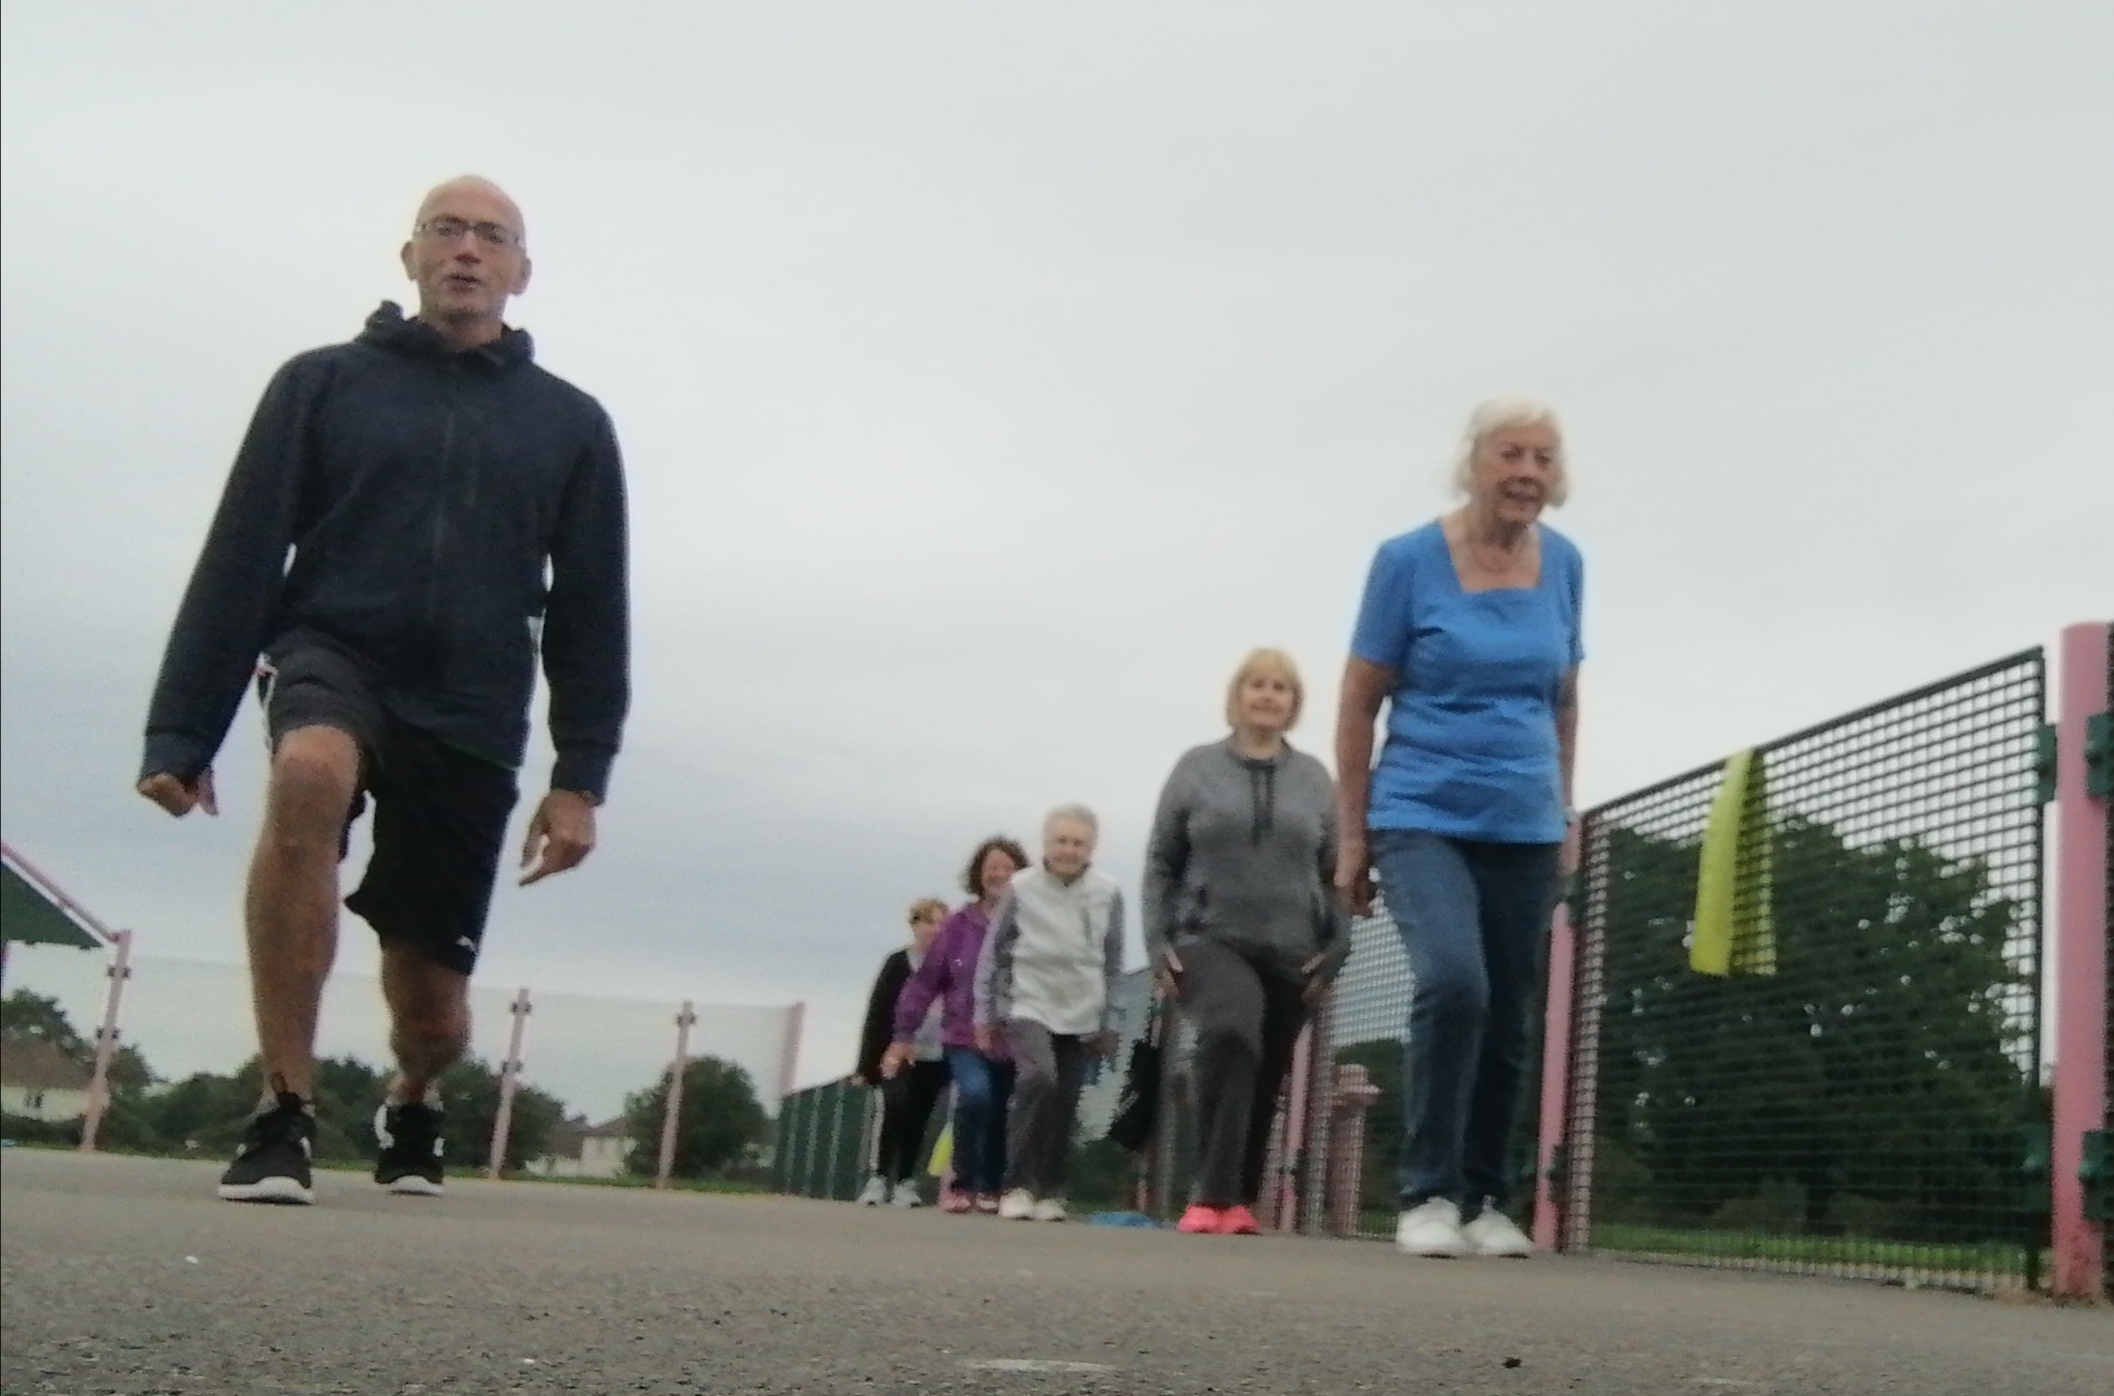 Over 50's Functional Fitness Class